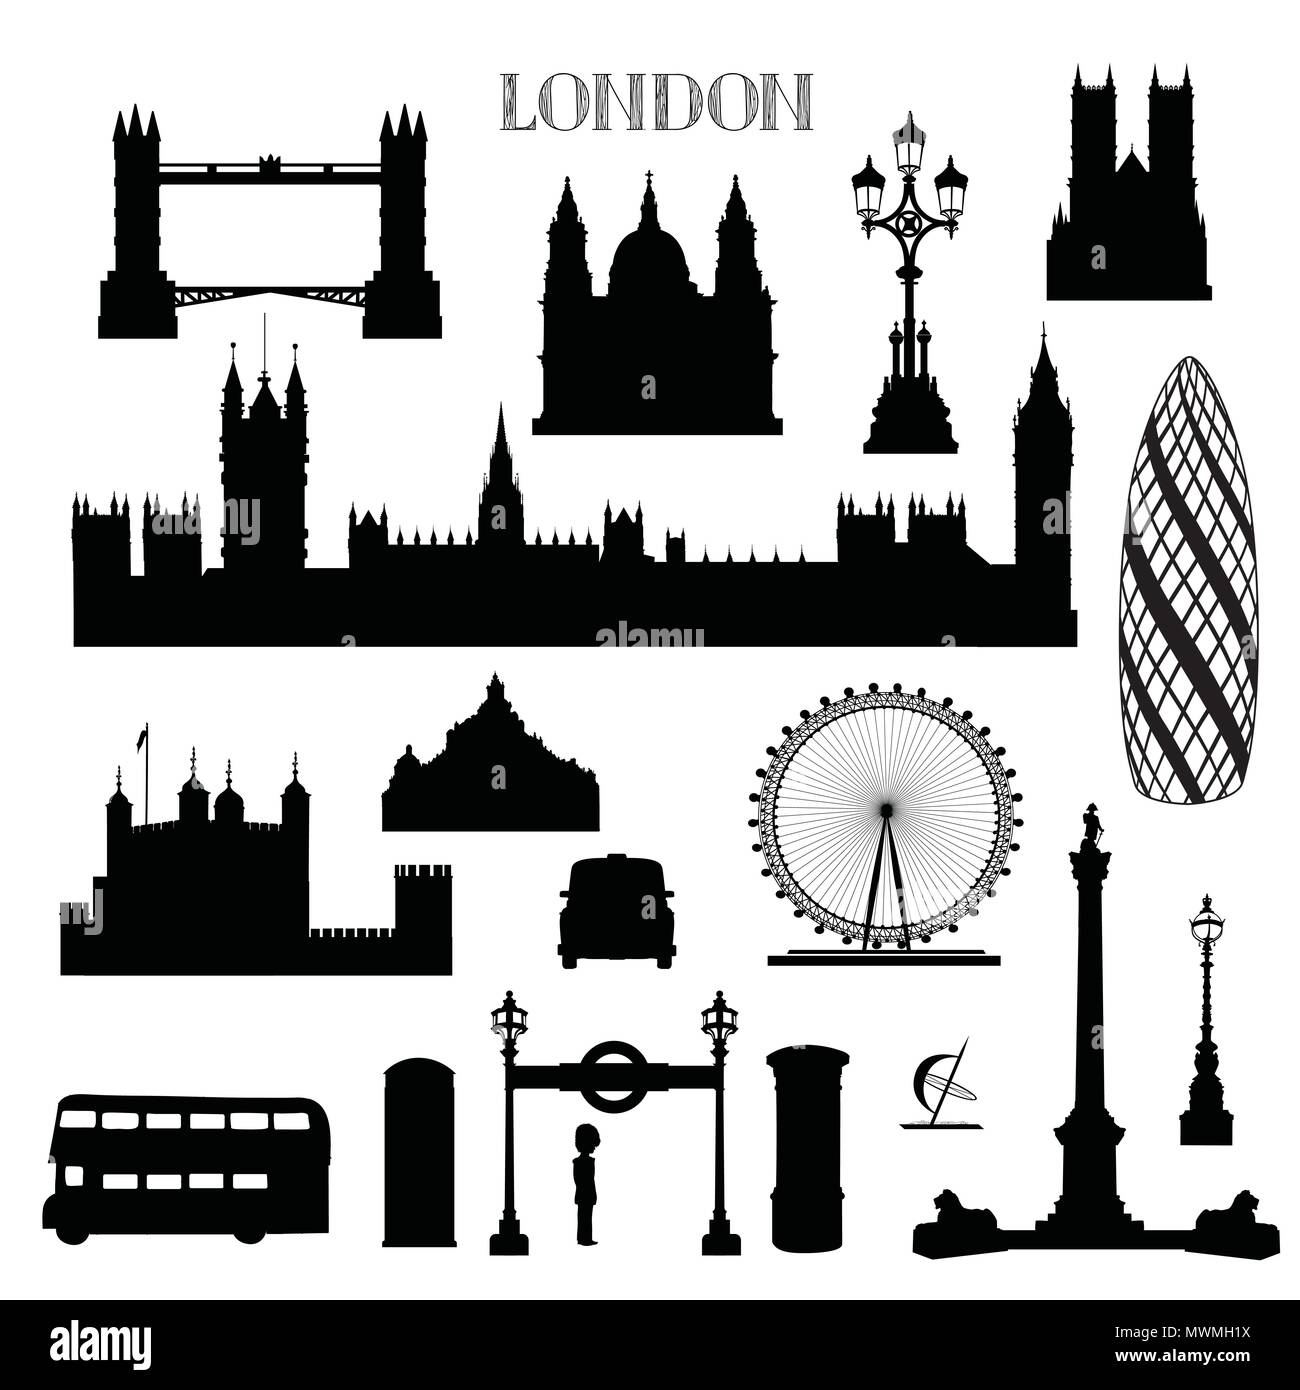 London city icon set. England landmark silhouette with lettering over white background. Travel famous places architecure - Stock Image